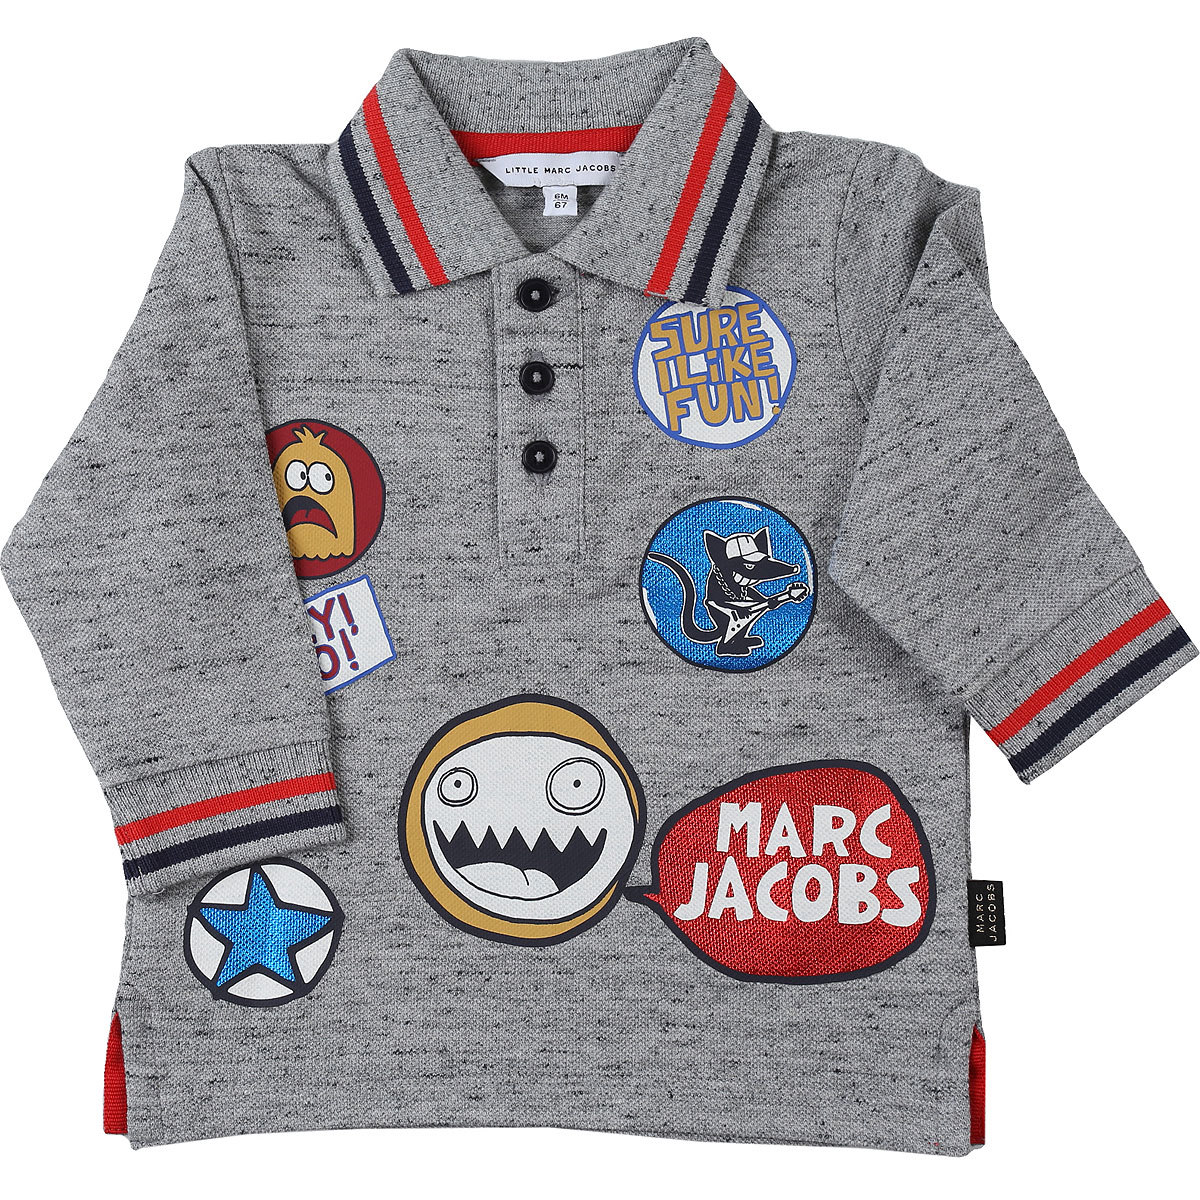 Marc Jacobs Baby Polo Shirt for Boys On Sale, Grey Melange, Cotton, 2019, 12 M 18M 2Y 3Y 6M 9M